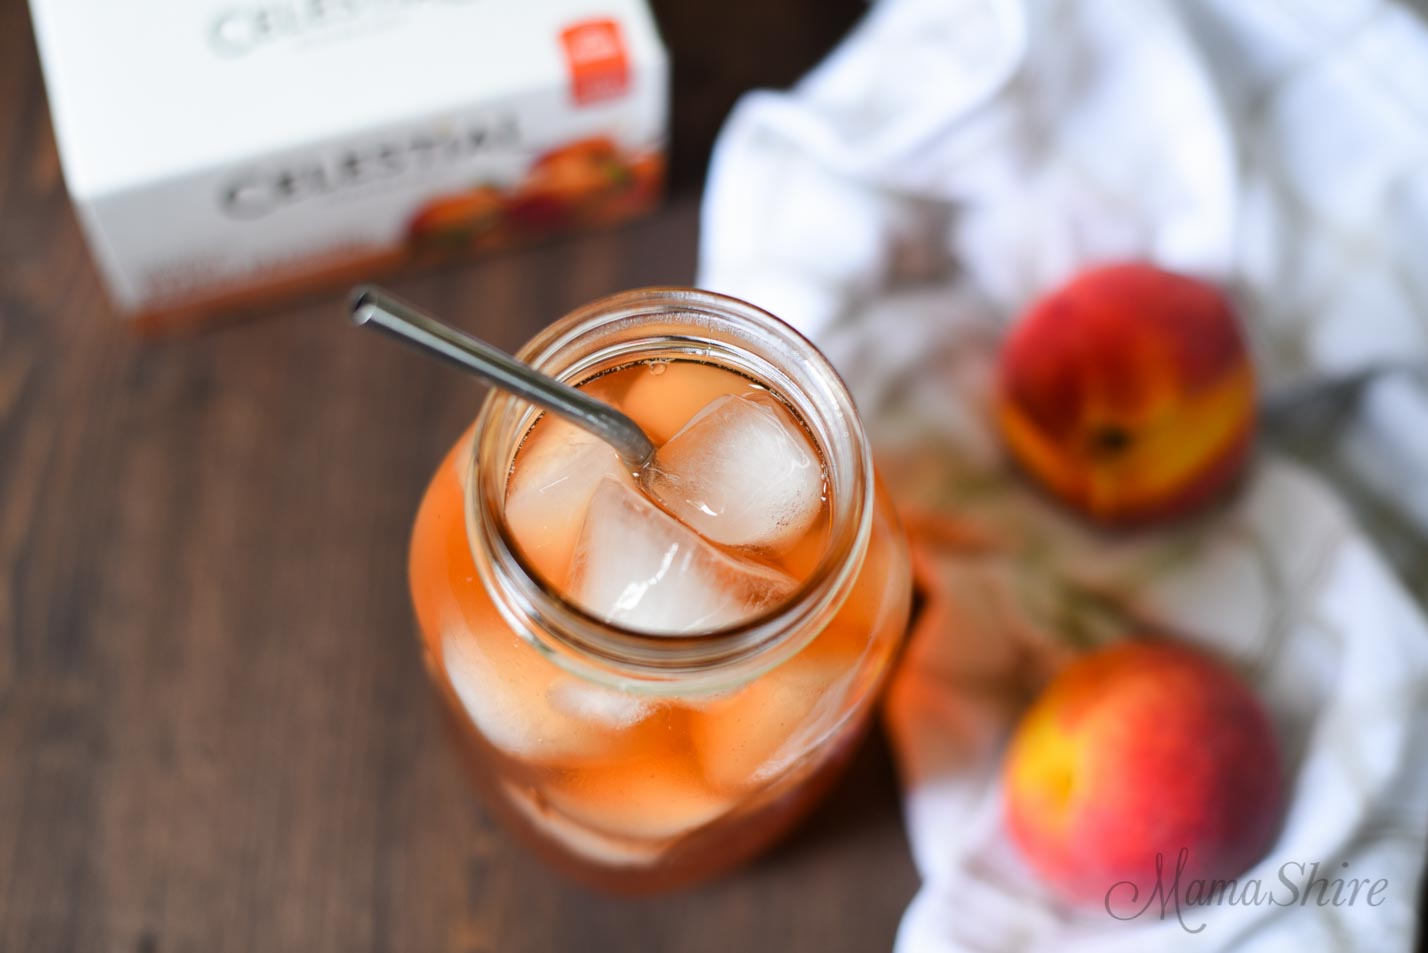 Peach Good Girl Moonshine - Sugar-free, Low-carb